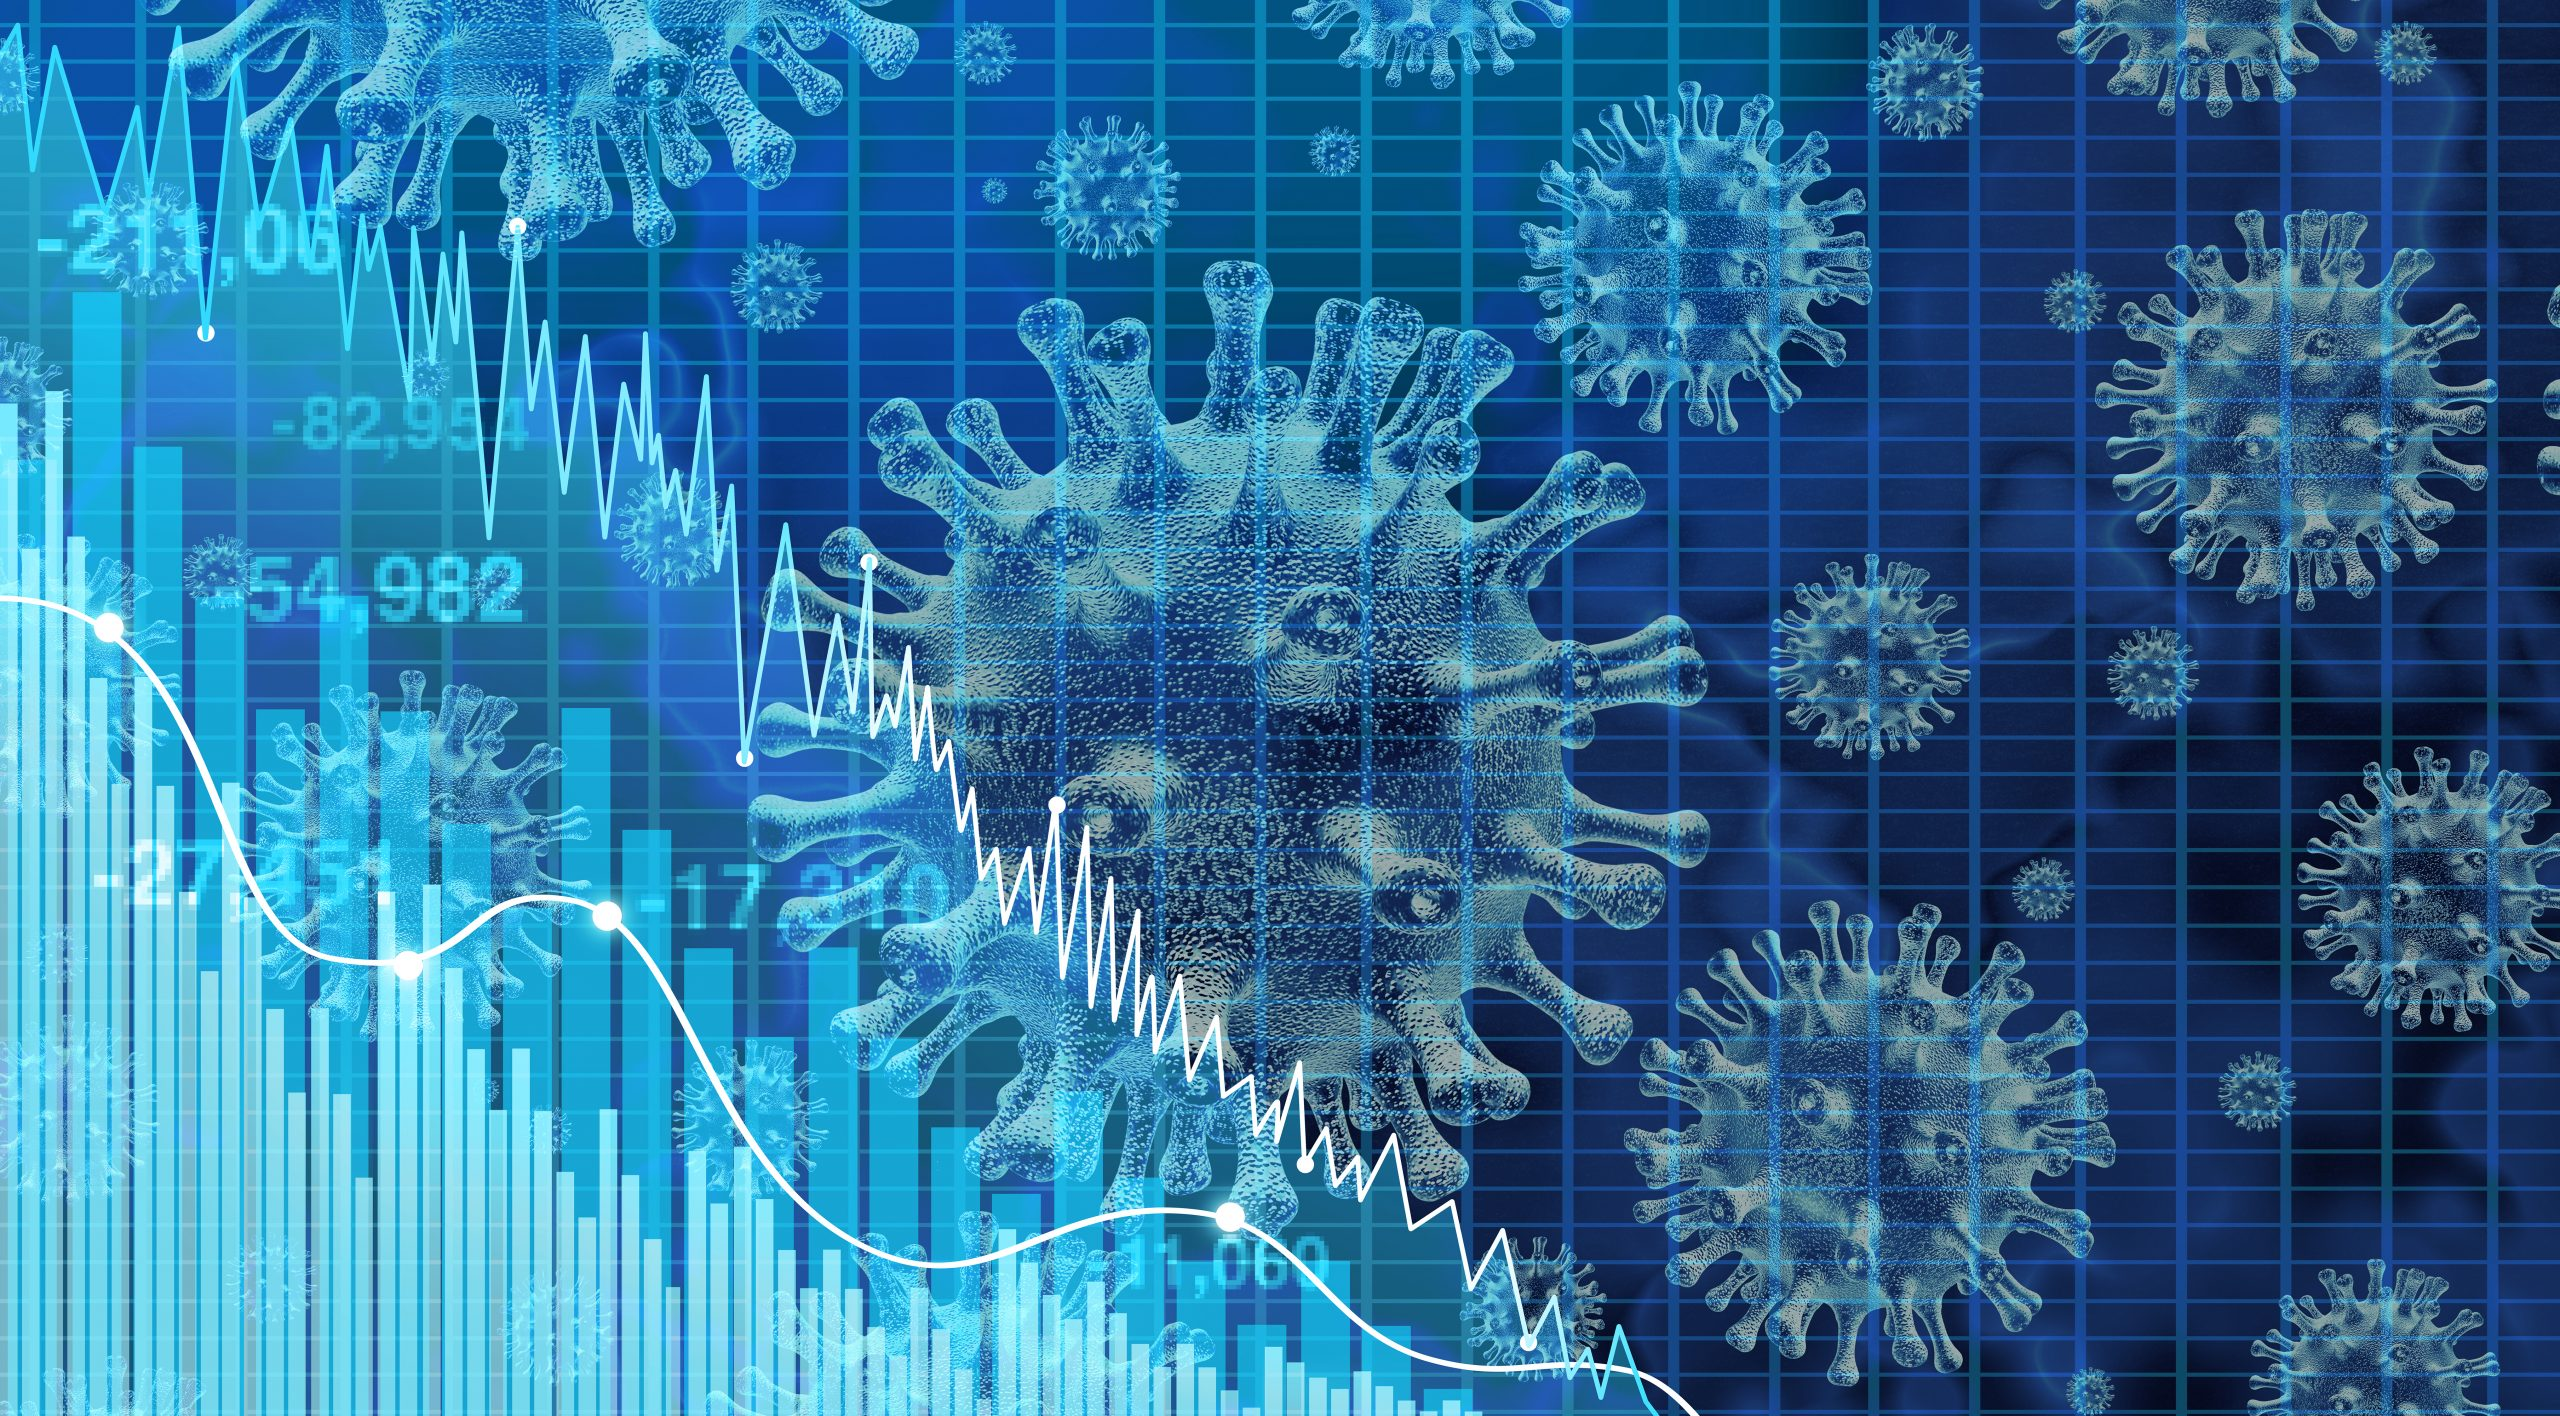 Will coronavirus affect the economy